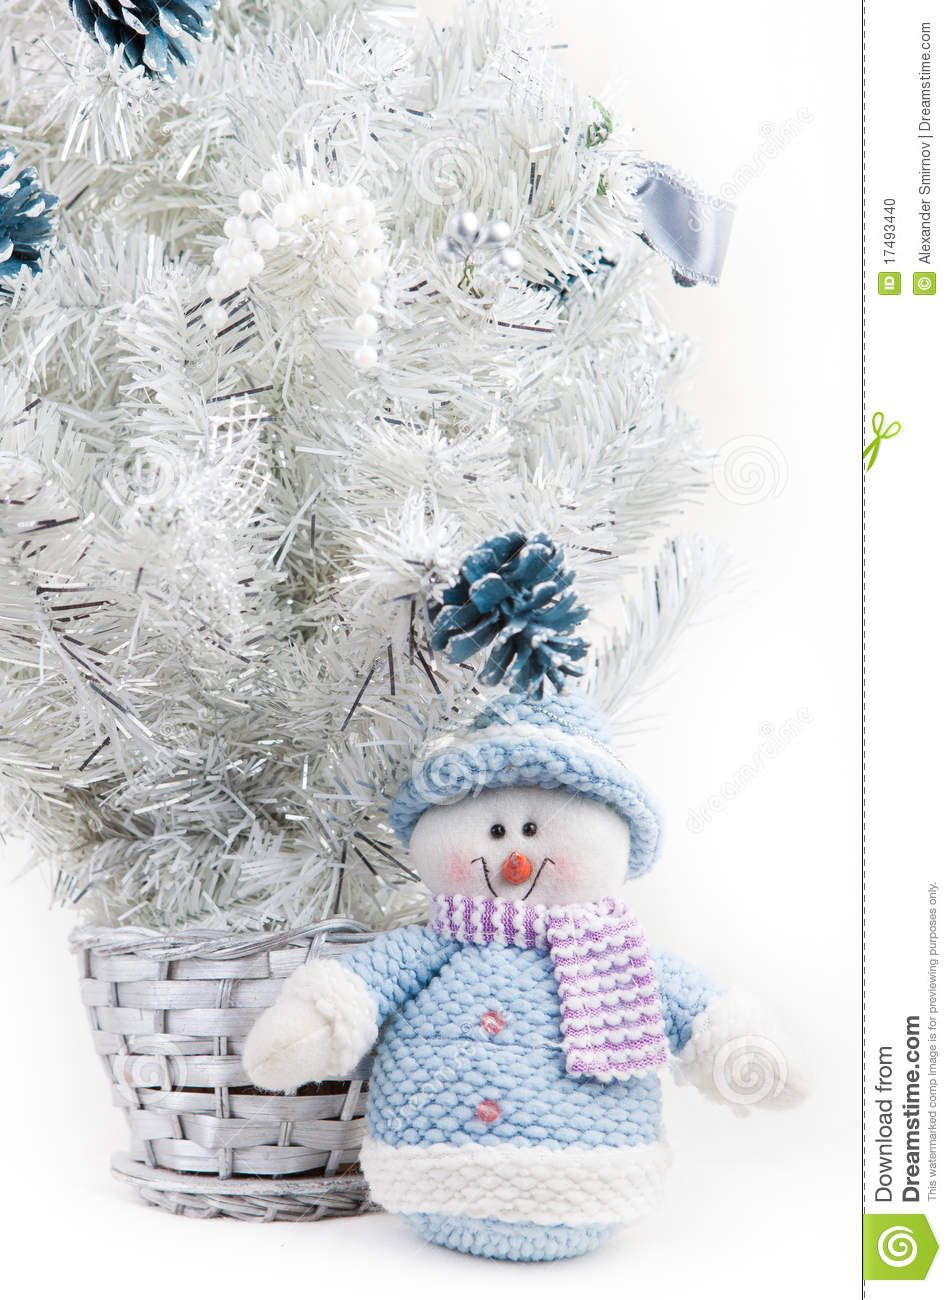 Toy Snowman Next To A White Christmas Tree - Download From Over 27 Million High Quality Stock Photos, Images, Vectors. Sign up for FREE today. Image: 17493440